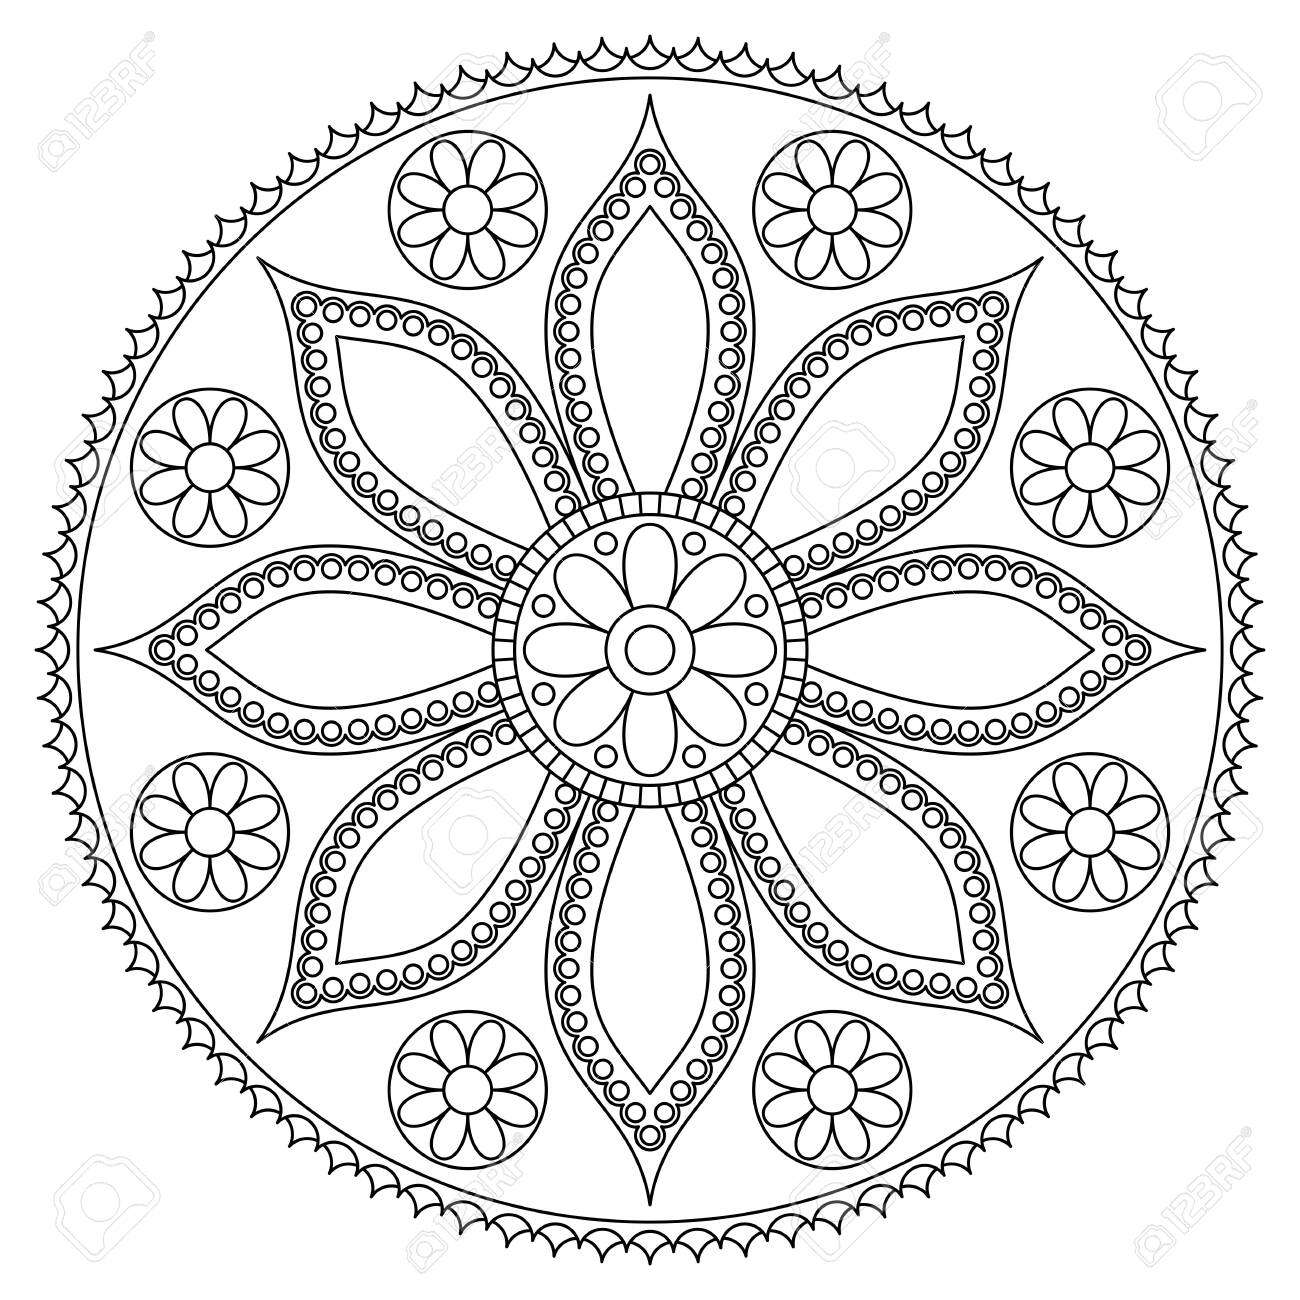 Black And White Mandala With Floral Pattern Antistress Coloring Royalty Free Cliparts Vectors And Stock Illustration Image 138539946